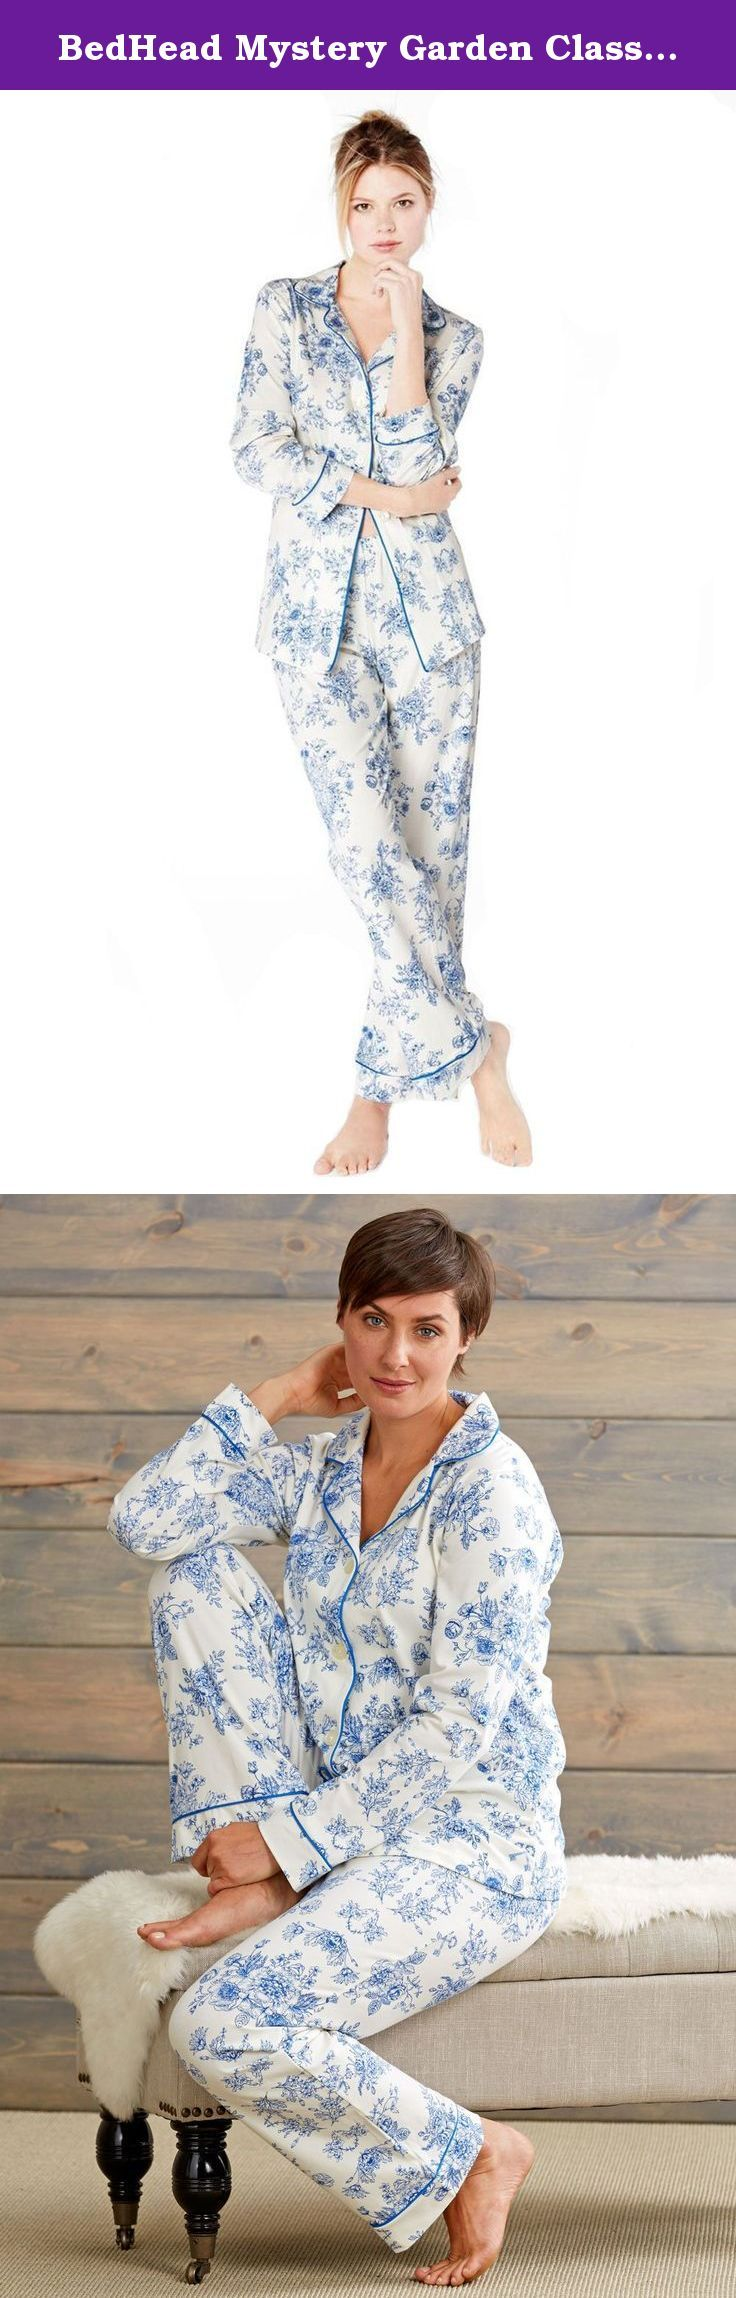 BedHead Mystery Garden Classic Stretch Made in USA PJ Set (XL). These pajamas' coolly elegant floral print and sublime softness will lull you into a state of somnolent serenity. And the knit fabric's built-in stretch lets you rest in unrestrained freedom throughout the night. Crafted by your fellow Americans in Los Angeles, they're impeccably tailored from contrast piping to plush elasticized waistband.